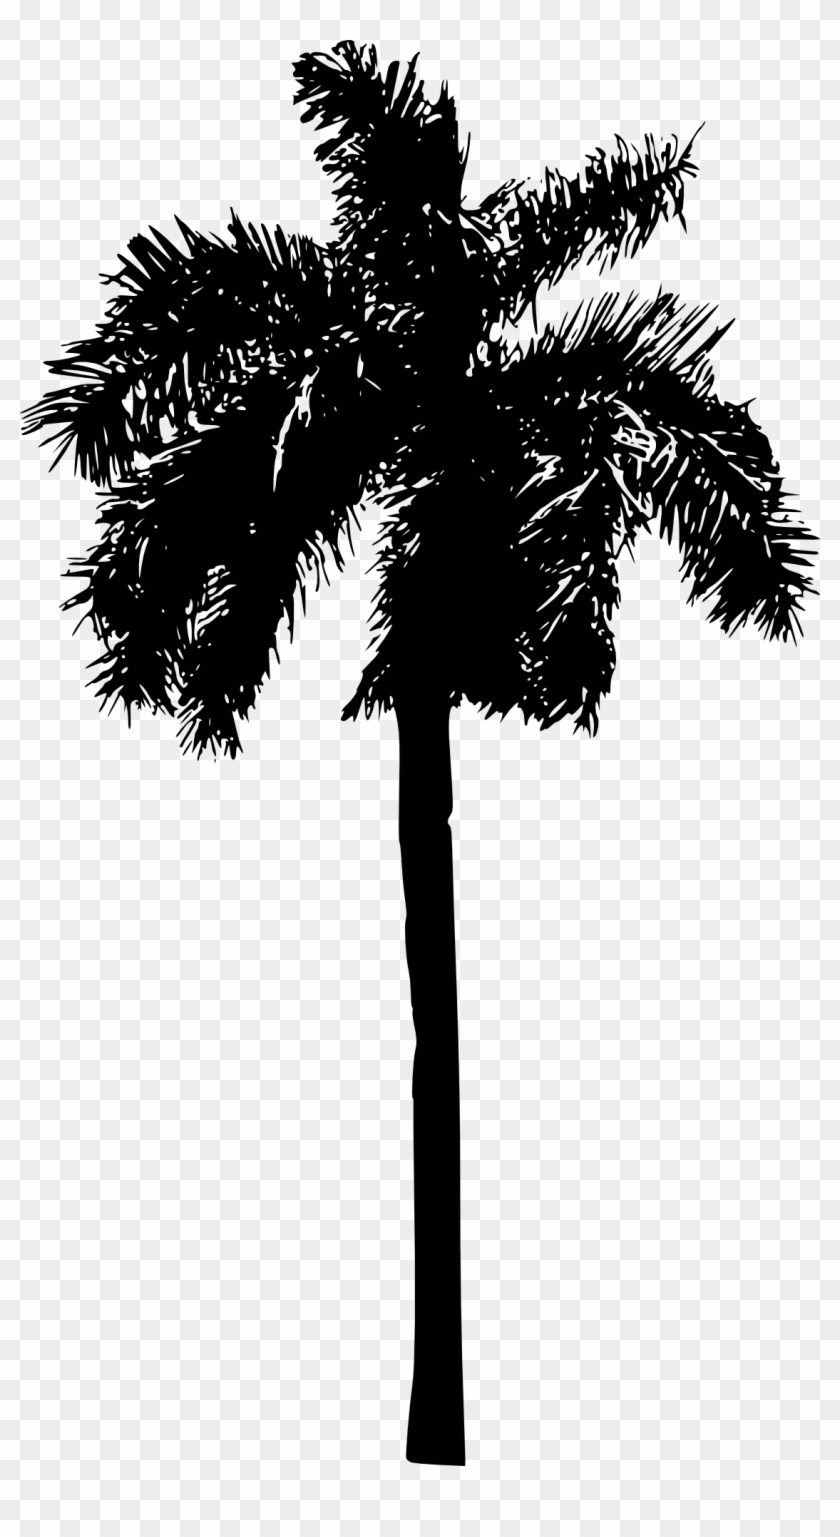 Free Download - Palm Tree Clipart #29090